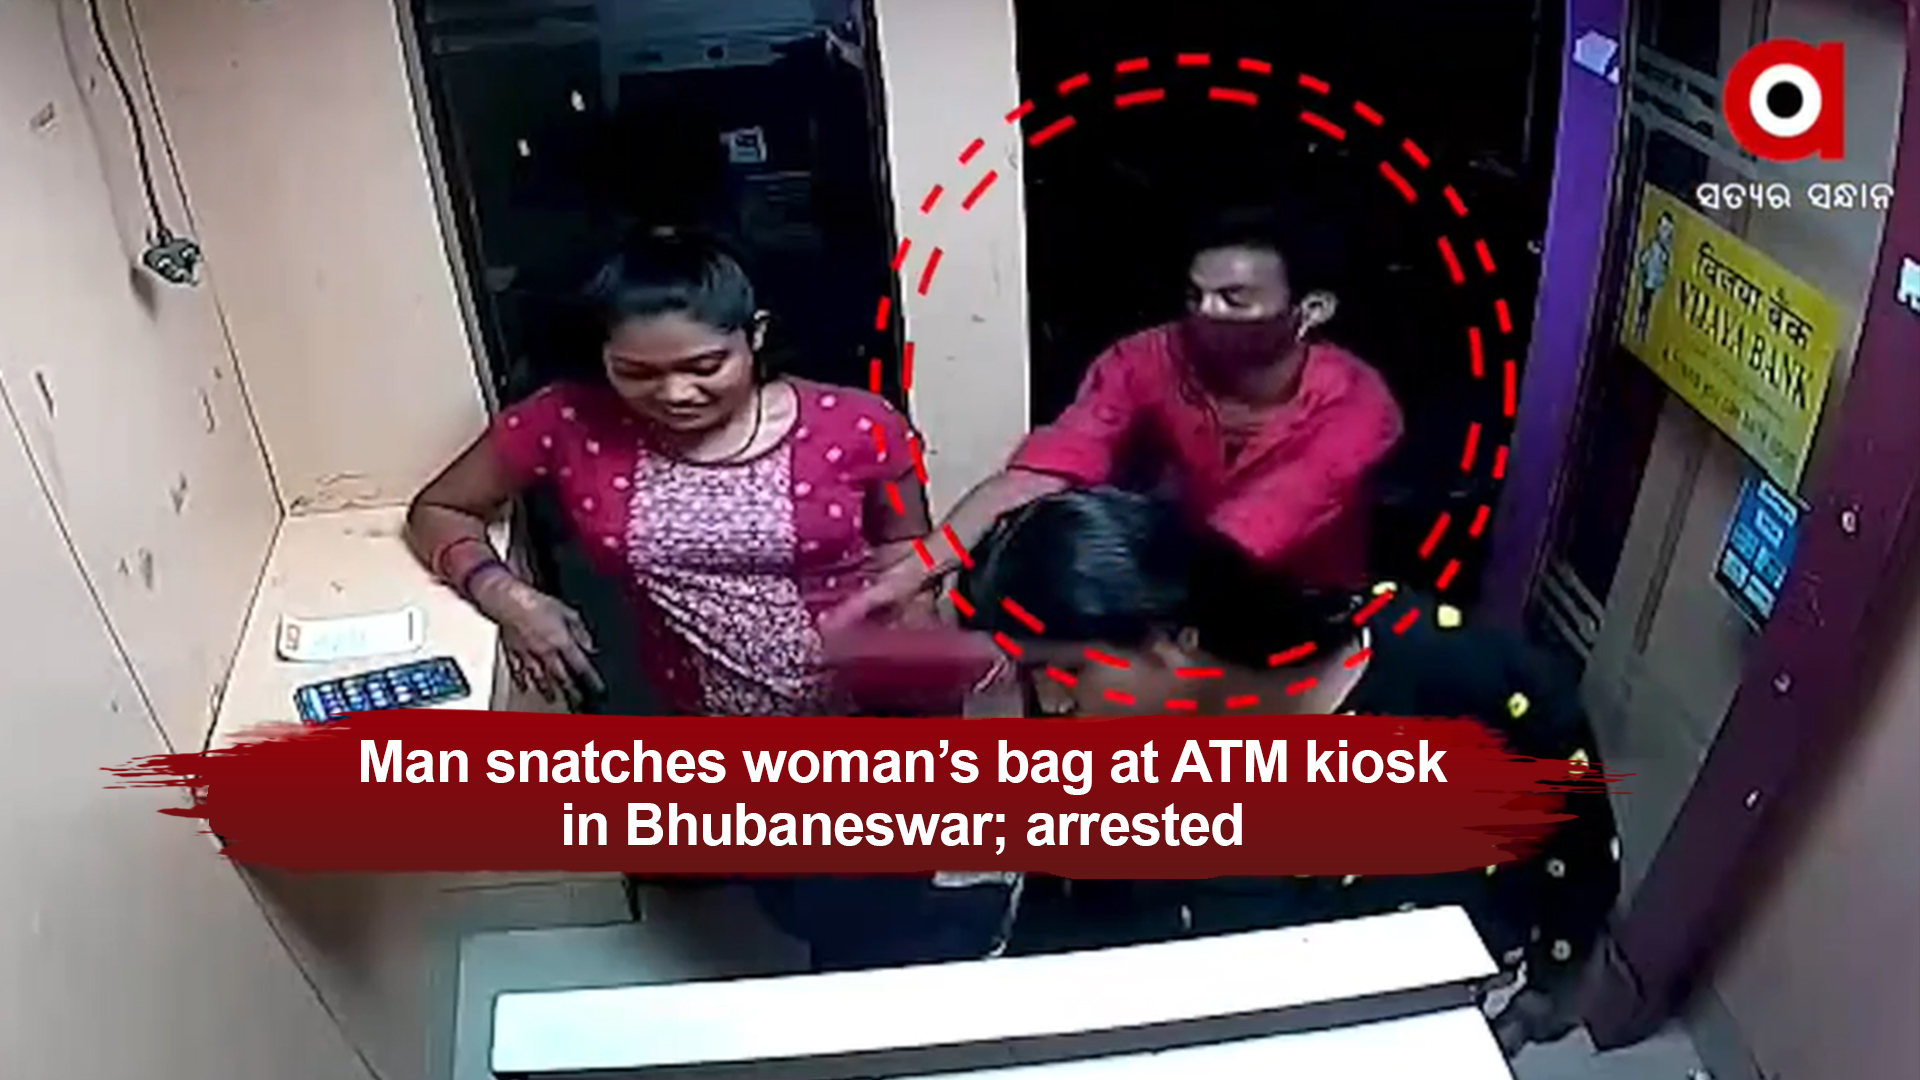 Caught on CCTV: Man snatches woman's bag at ATM kiosk in Bhubaneswar; arrested